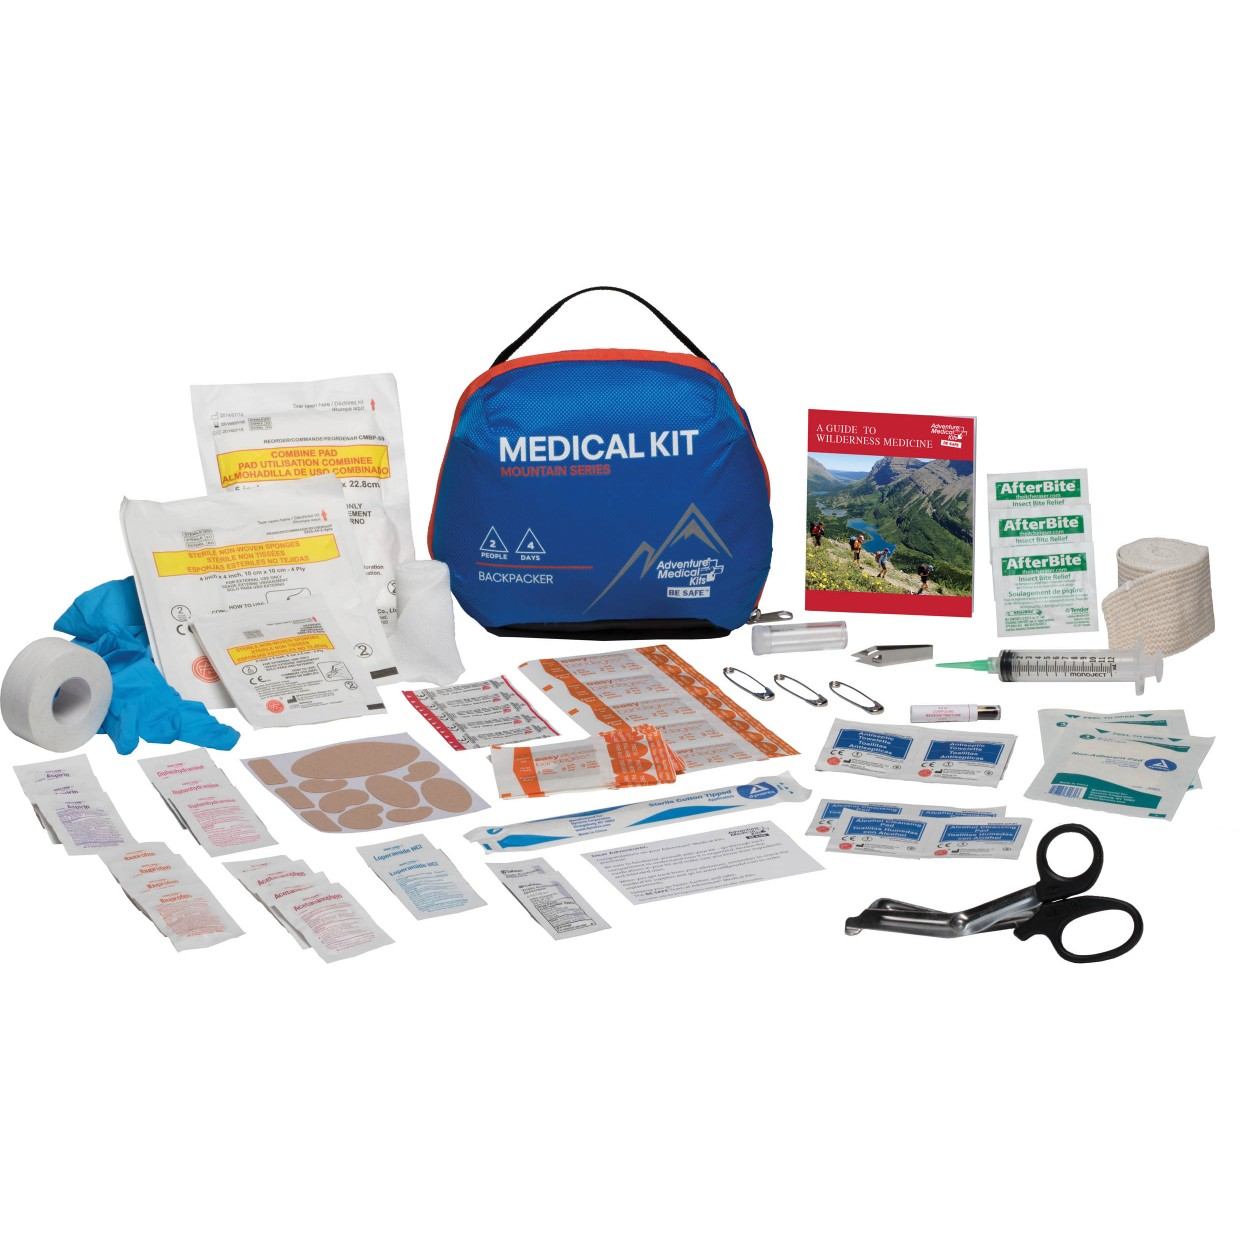 Adventure Medical Kits first aid kit